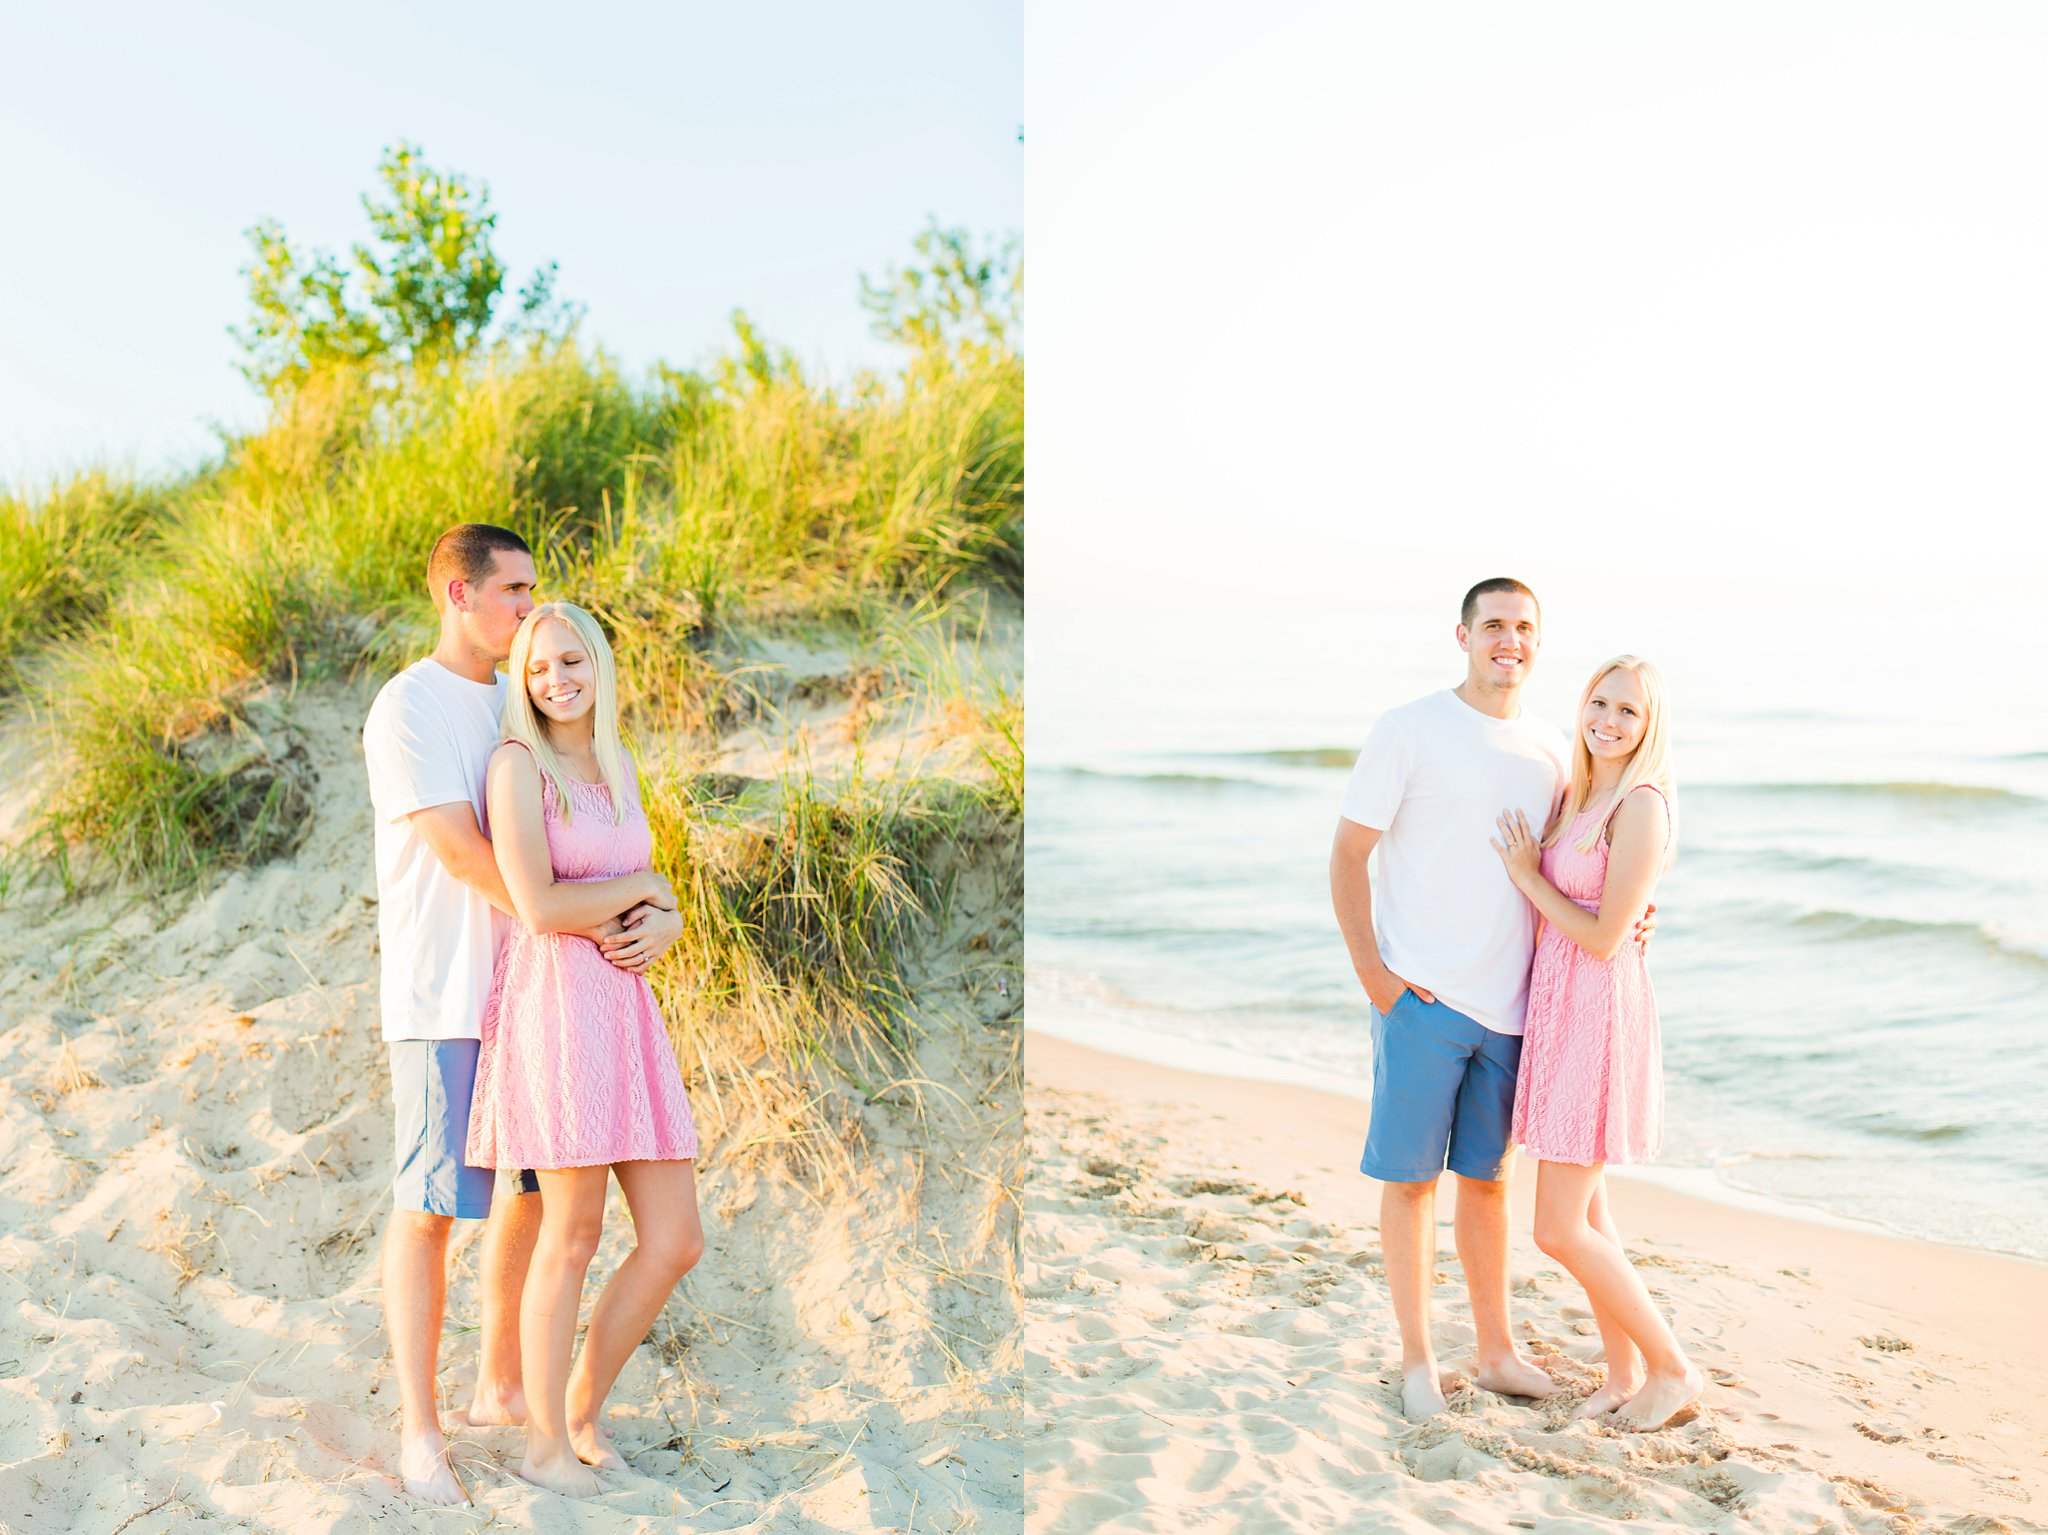 Silver Lake Engagement Photos Michigan Wedding Photographer Megan Kelsey Photography-9998.jpg